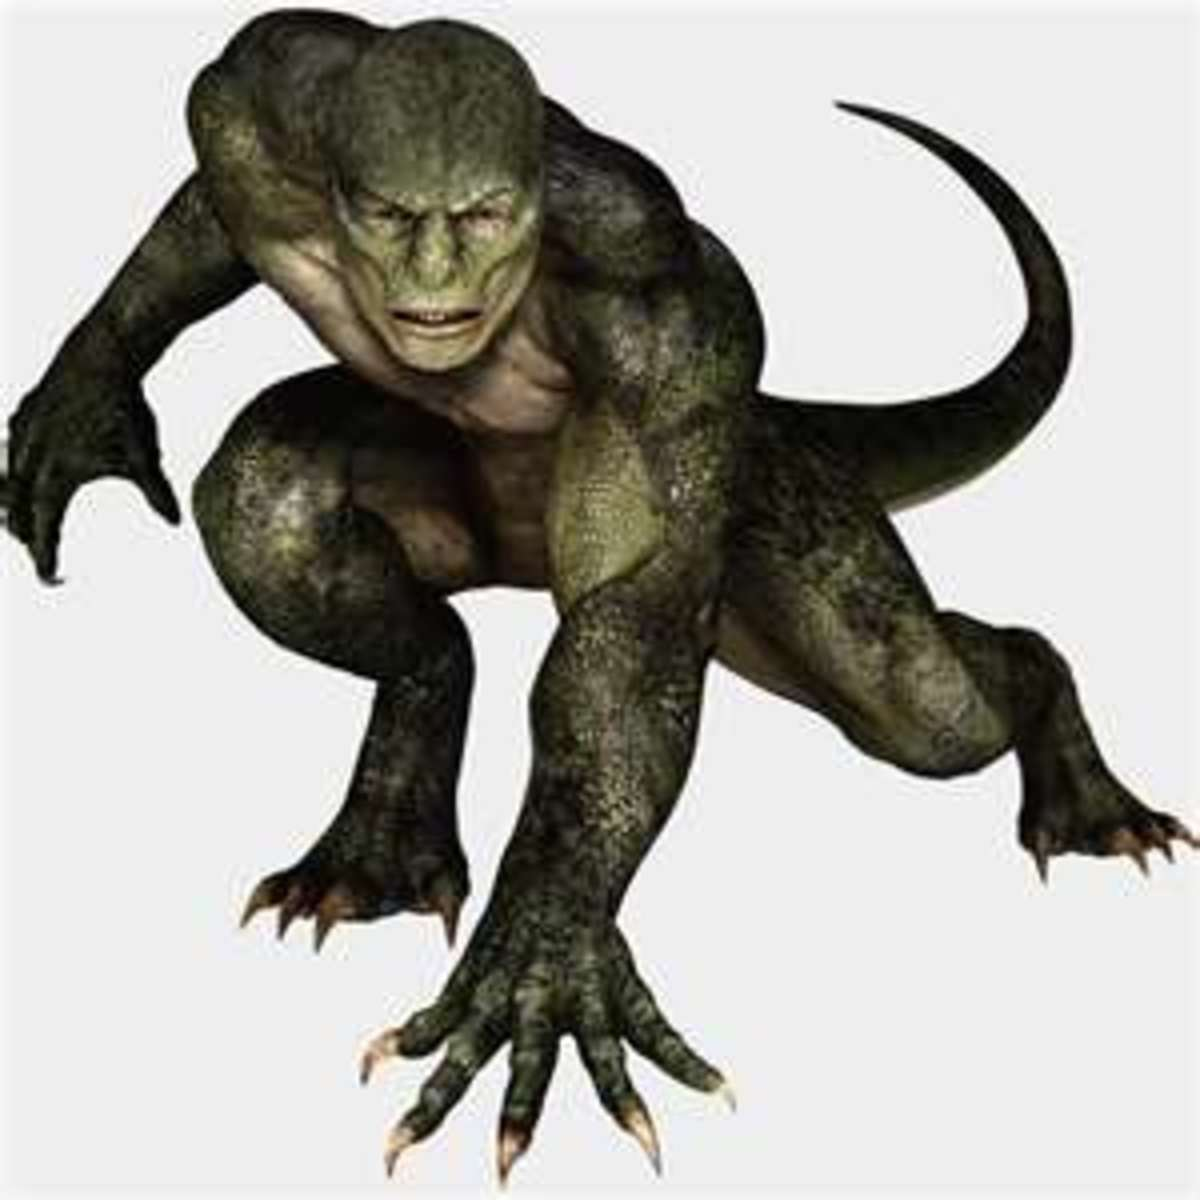 The Lizard as he appears in the newest Spiderman film.